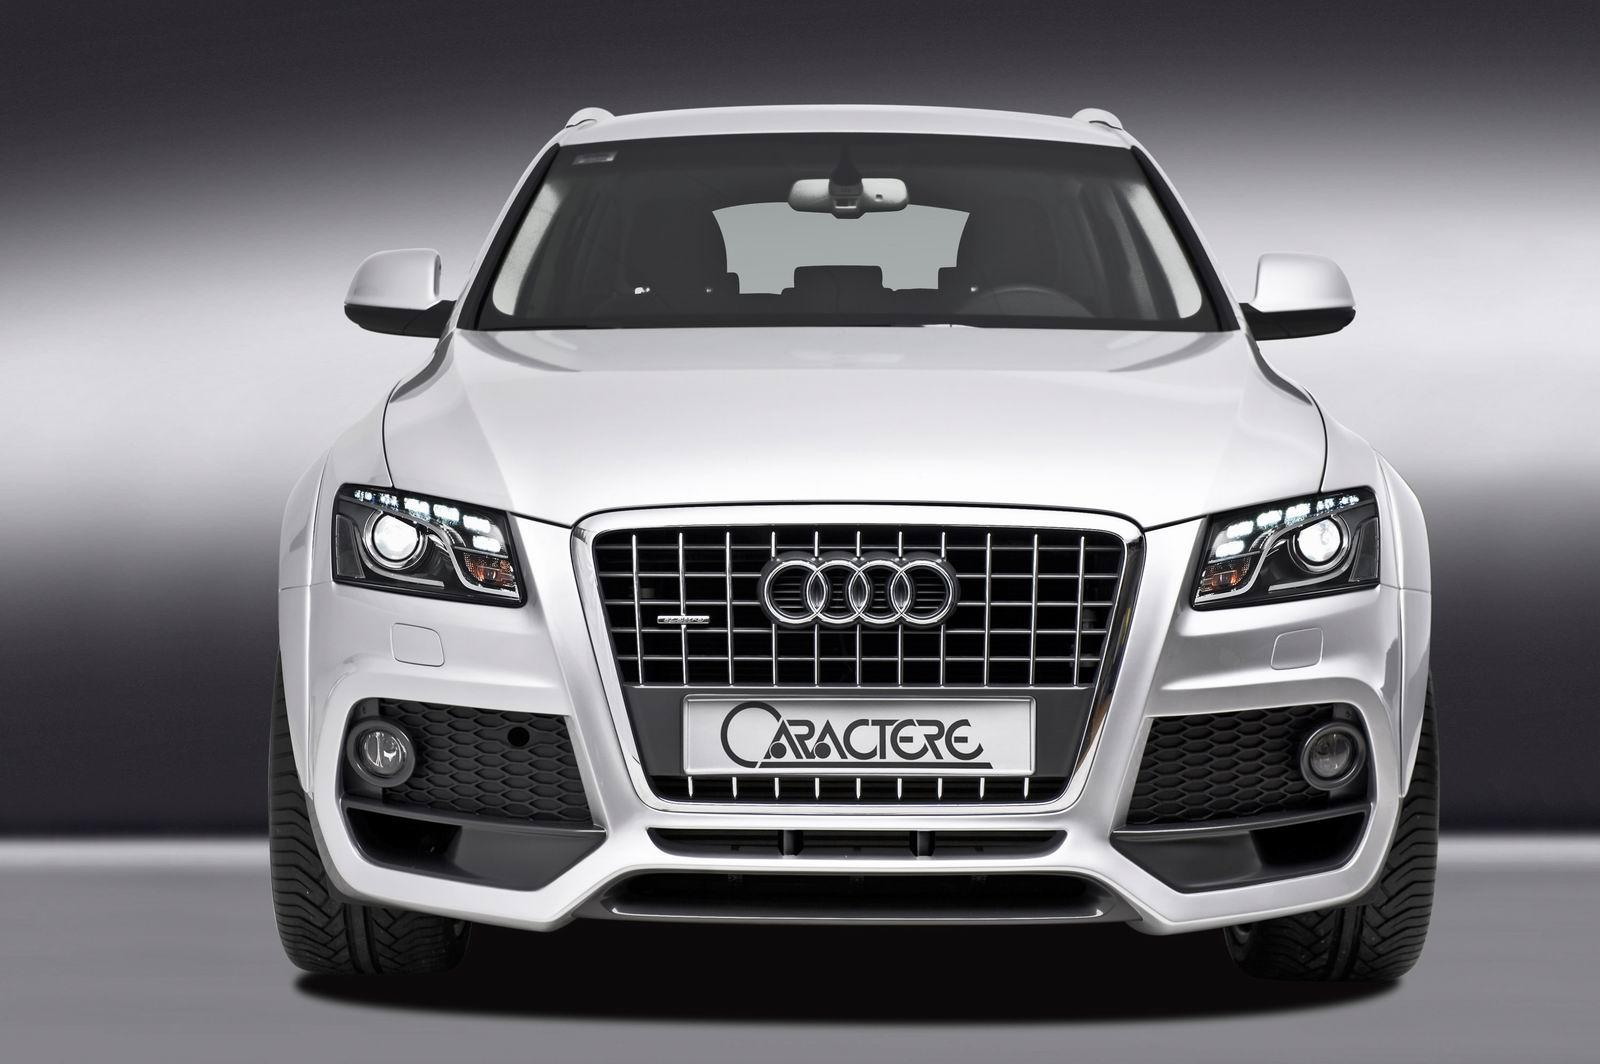 1600x1064 - Audi Q5 Wallpapers 19